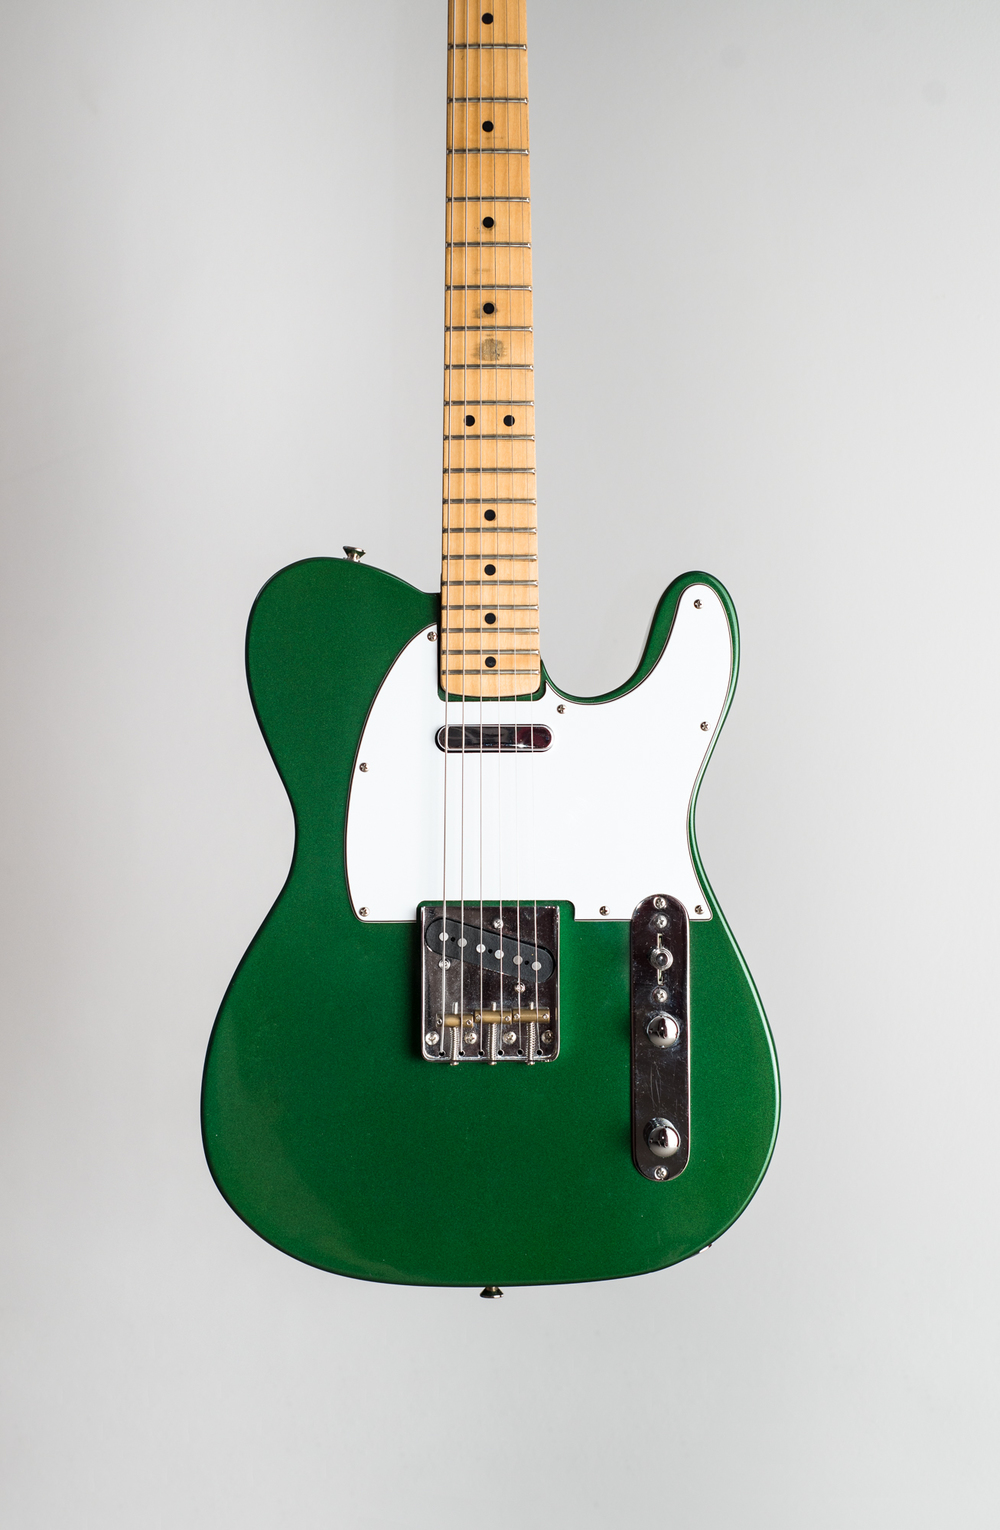 Recycled maple telecaster body with an original maple stratocaster neck. Passive circuitry + original Fender hardware. Built in collaboration with my little brother.